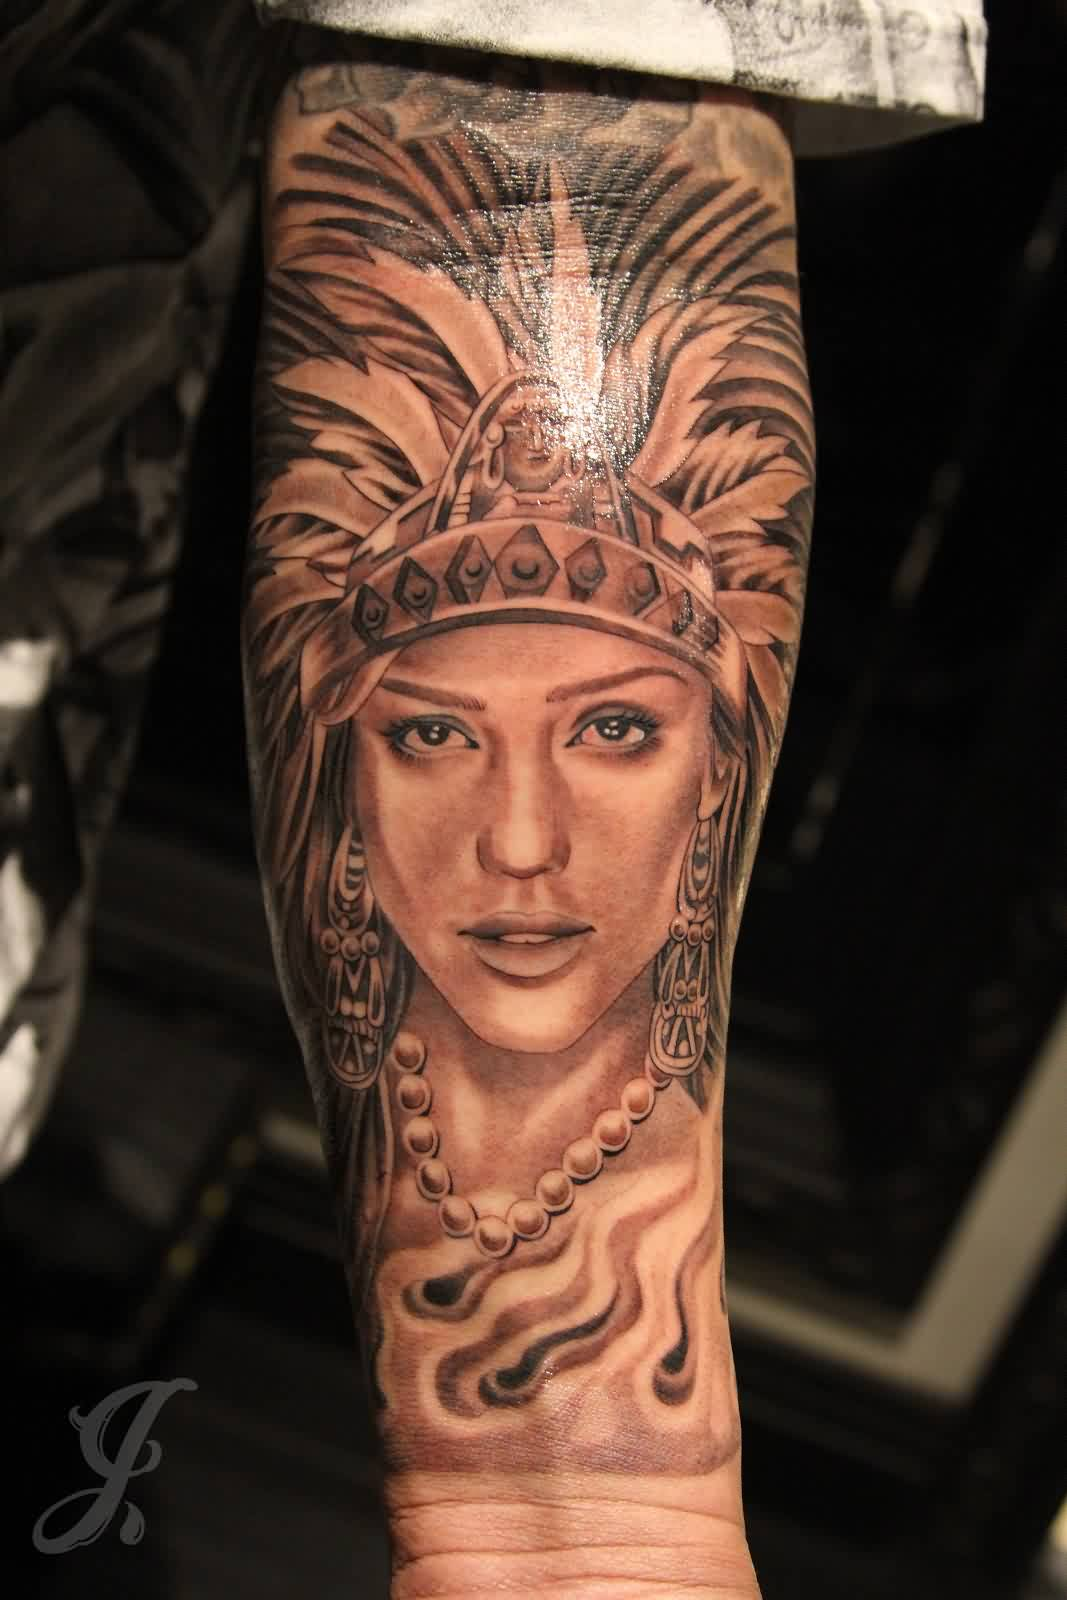 Lovely Aztec Queen Tattoo On Forearm